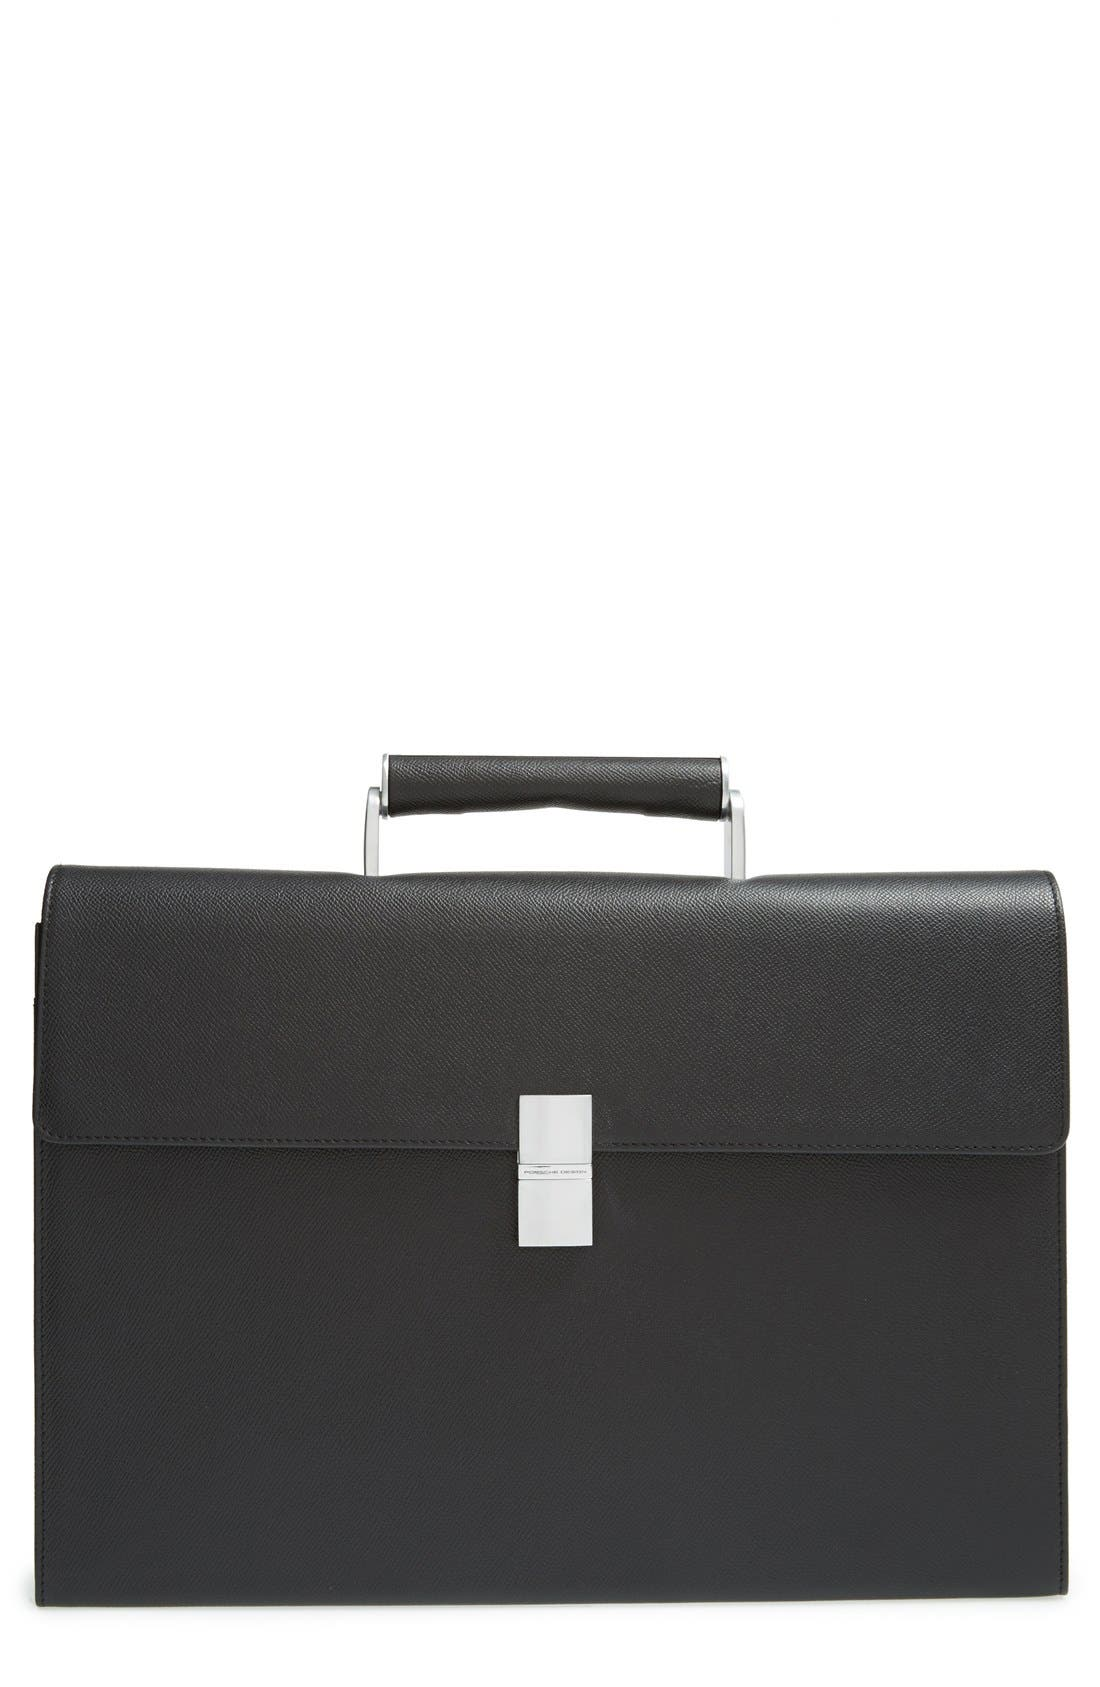 French Classic 3.0 Leather Briefcase,                             Main thumbnail 1, color,